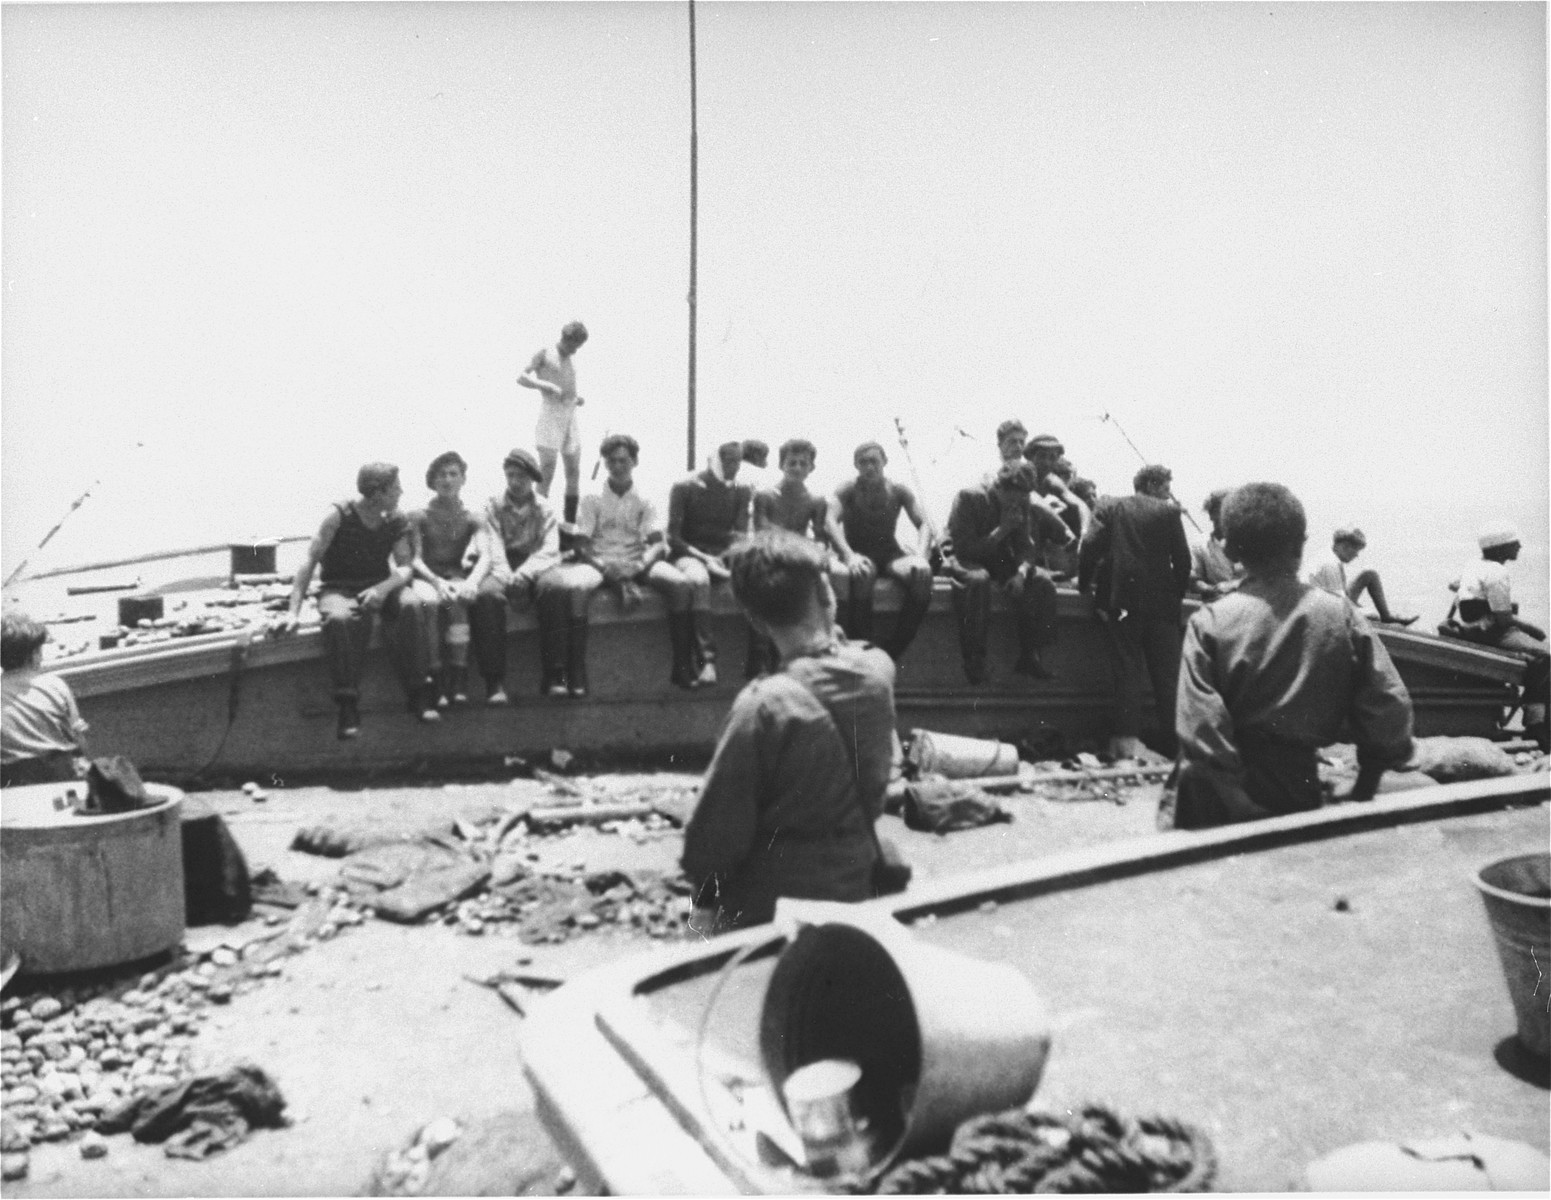 Jewish passengers rest on the deck of the Exodus 1947 amidst the debris from the previous night's struggle.